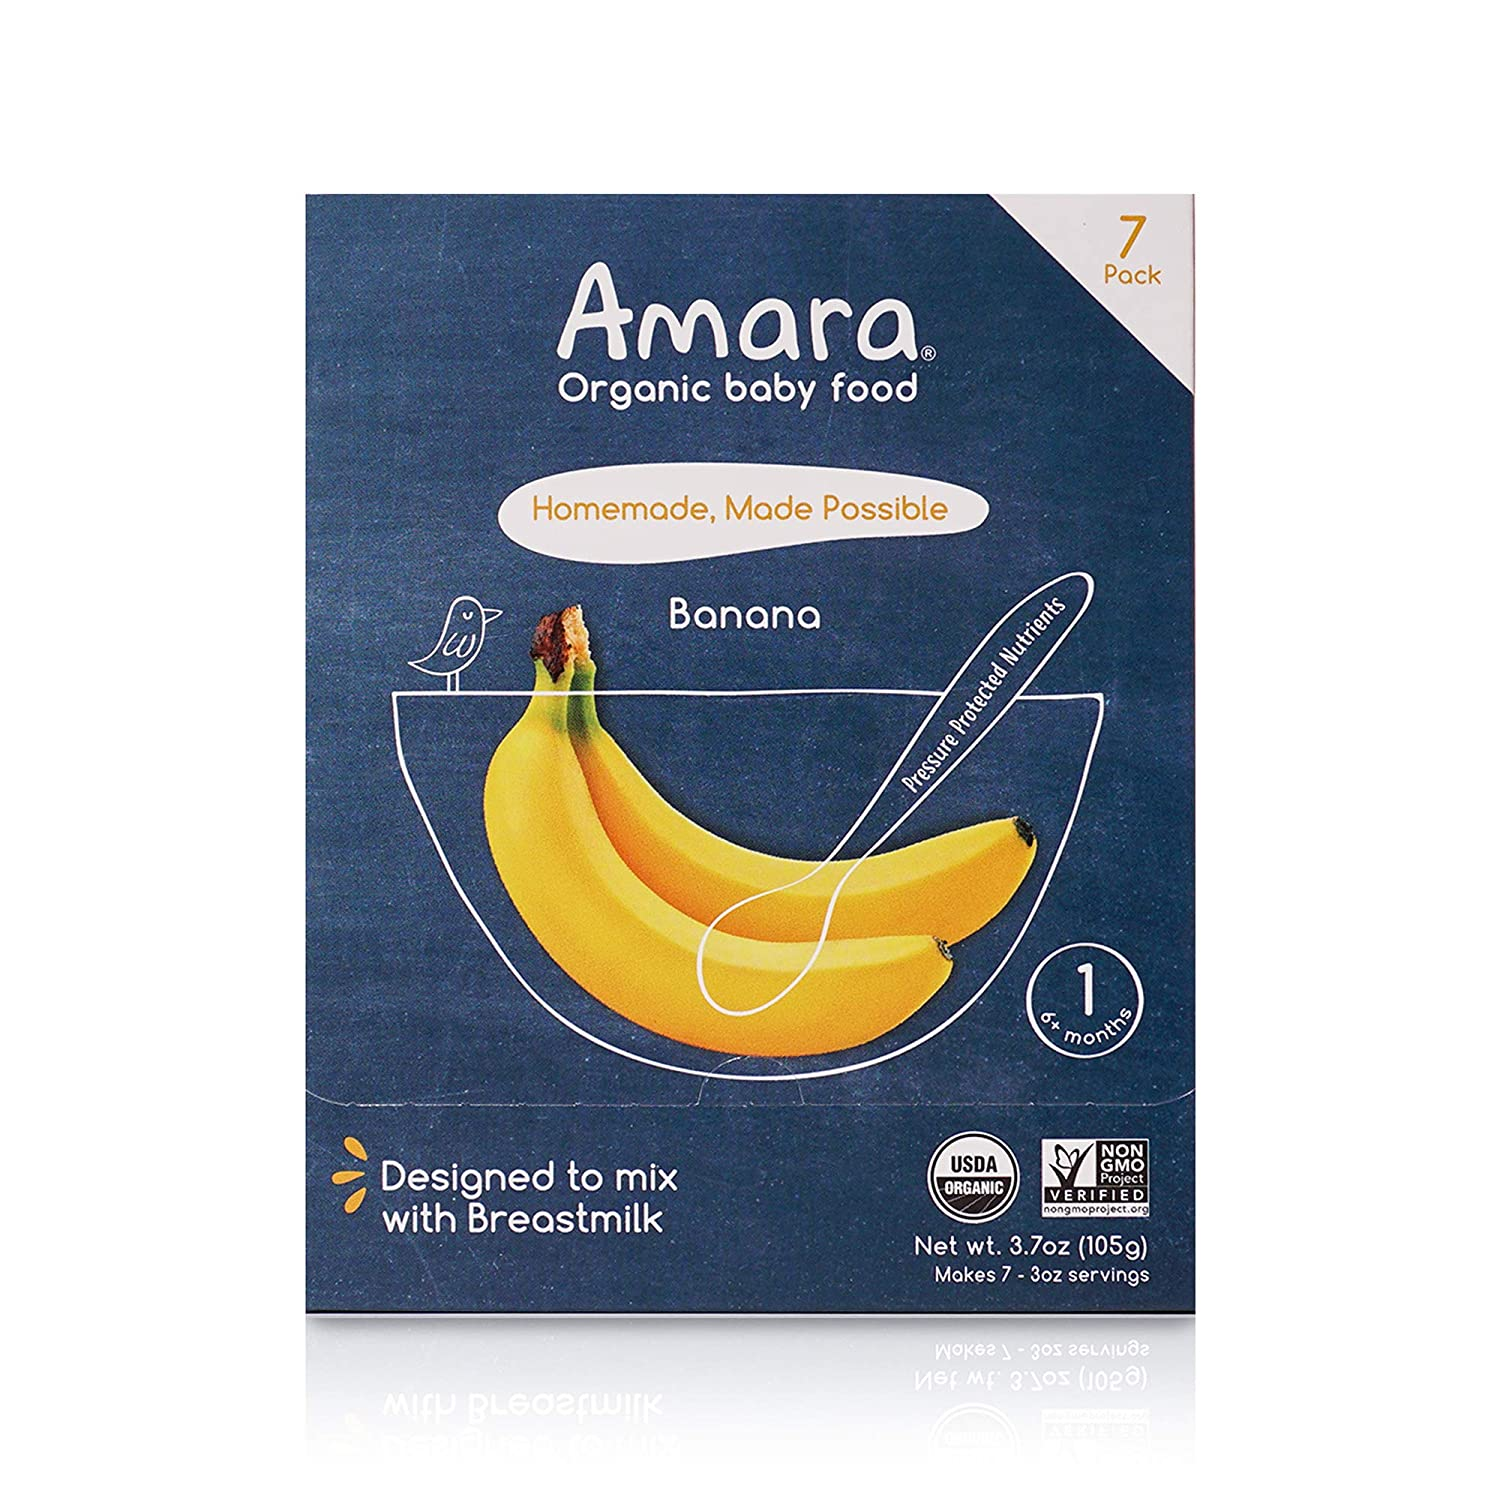 Amara Organic Baby Food   Banana   Homemade Made Possible   Mix with Breastmilk or Water   Certified Organic, Non-GMO, No Added Sugars  Stage 1   7 Pouches